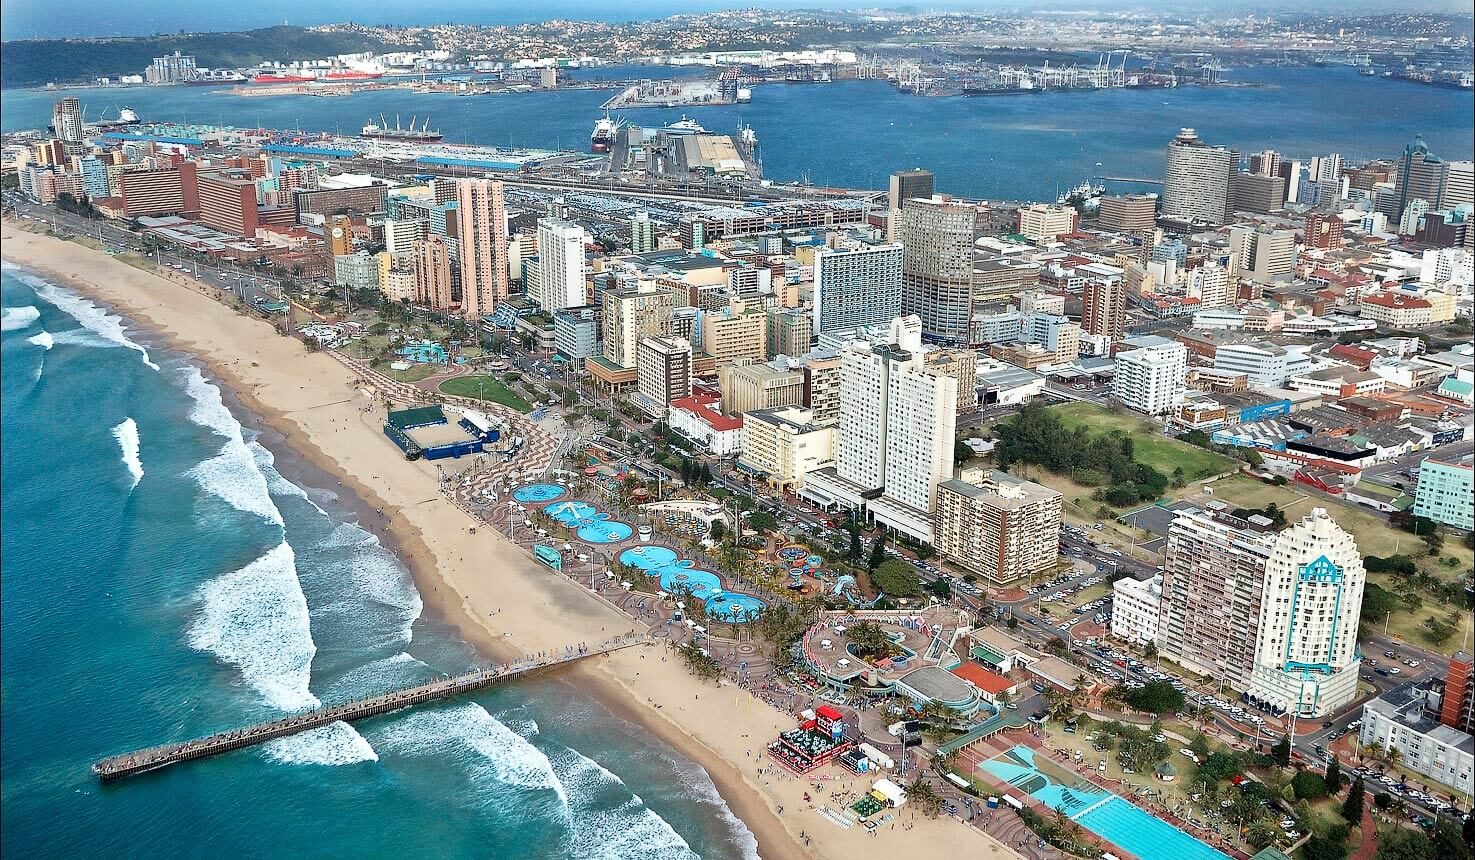 Transfers from OR Tambo to Durban, Kwazulu Private Game